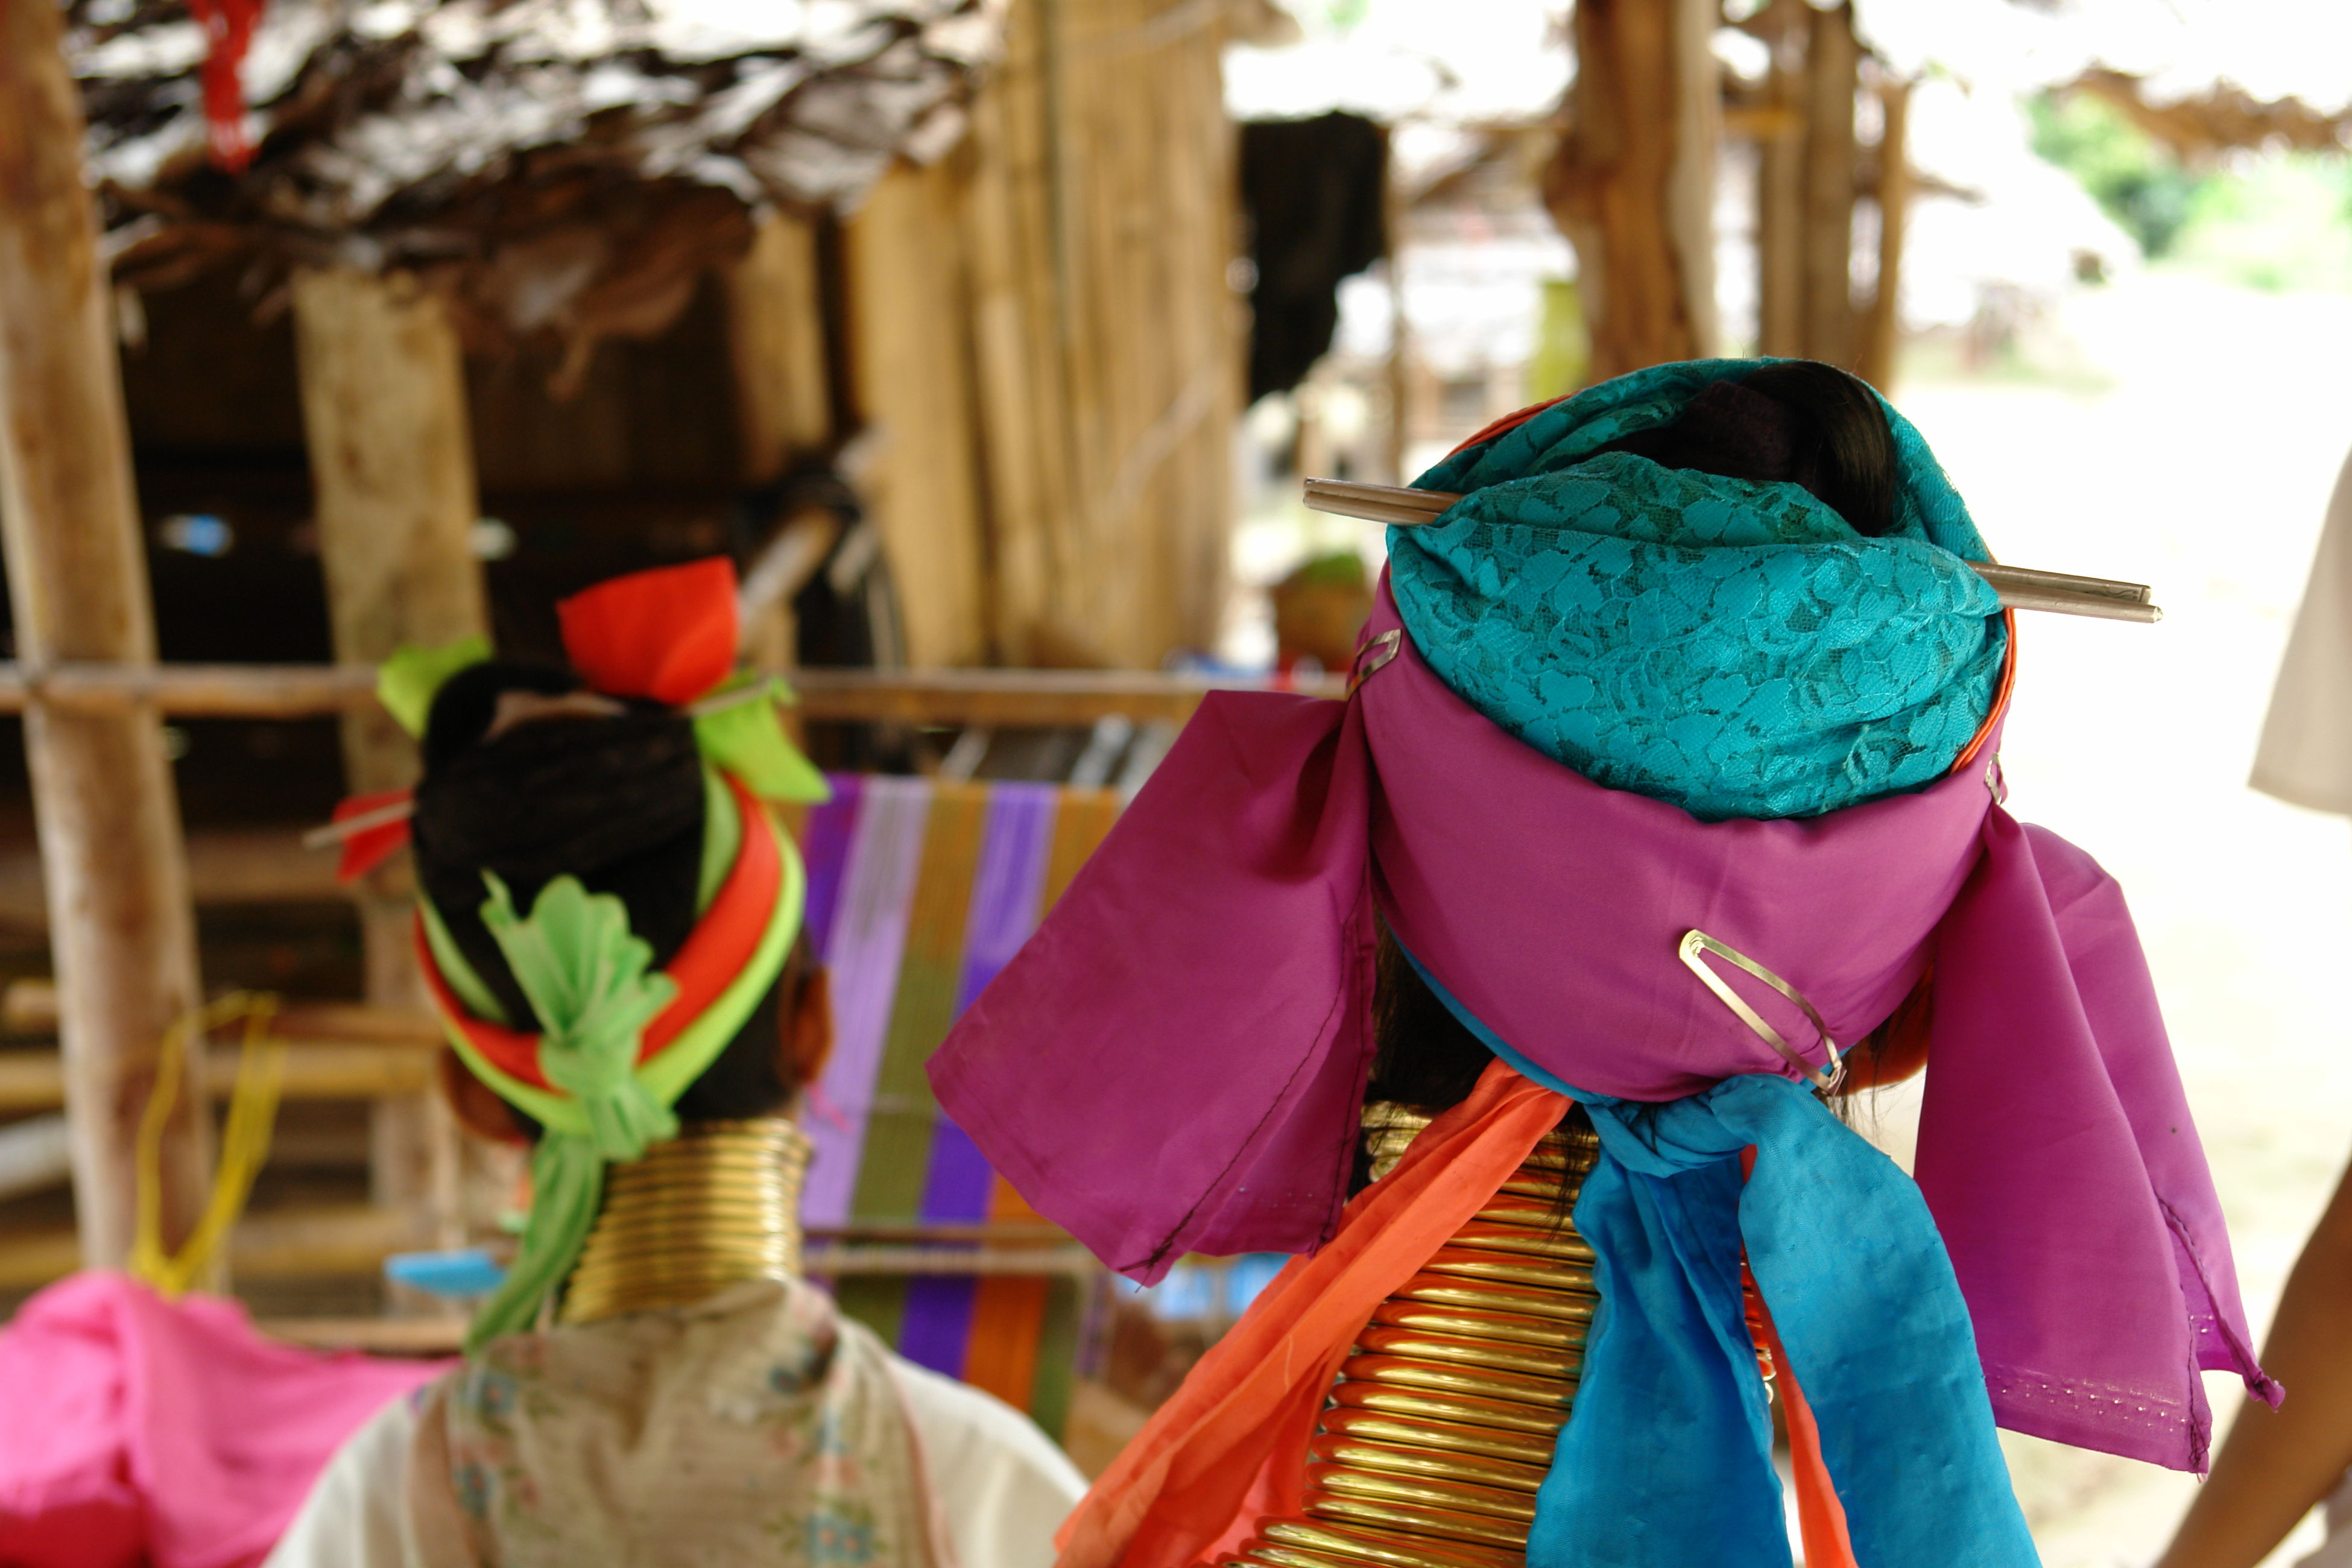 focus on foreground, multi colored, rear view, clothing, hanging, lifestyles, person, leisure activity, traditional clothing, indoors, day, men, textile, casual clothing, childhood, fabric, sitting, clothesline